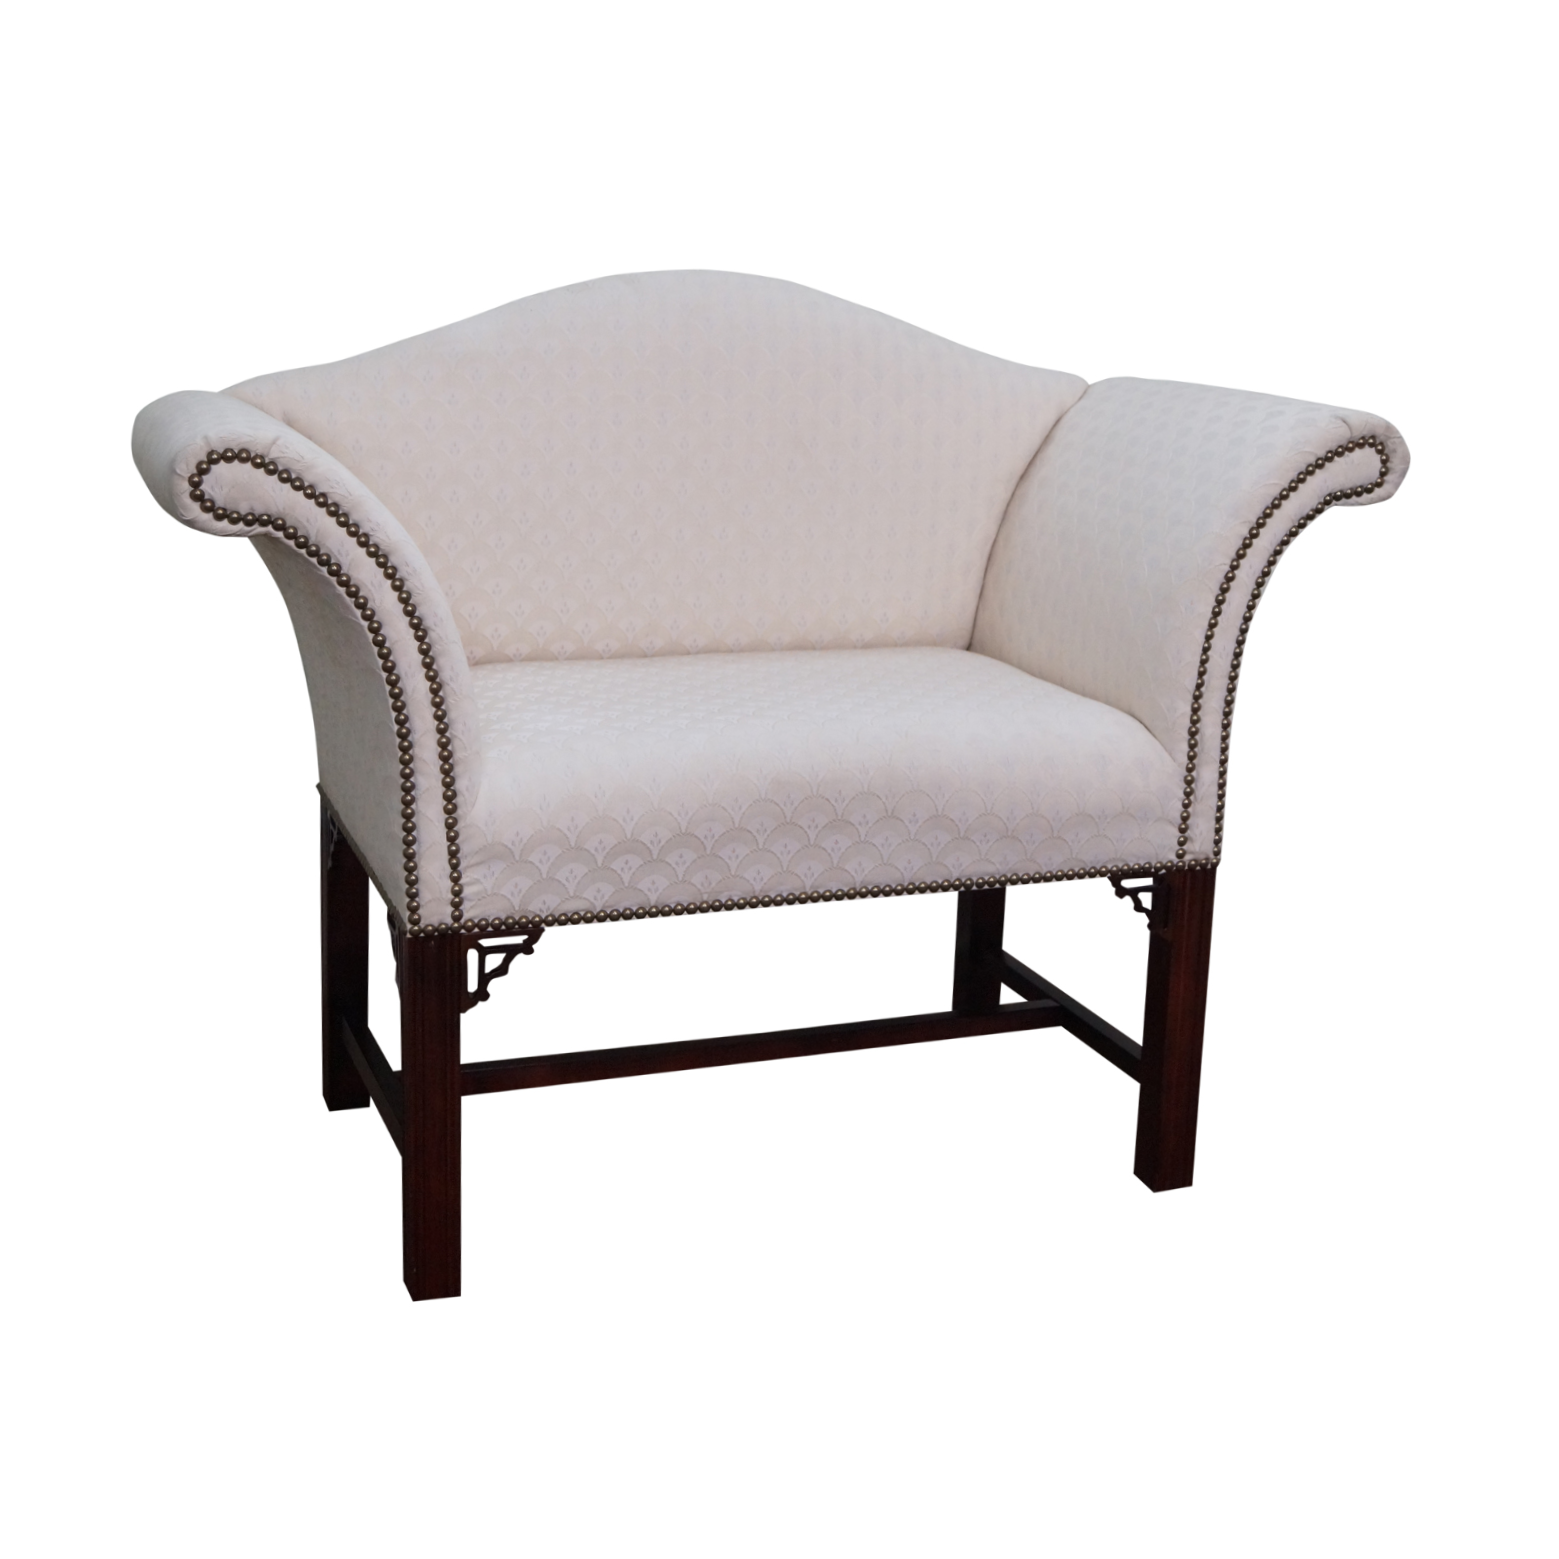 Chippendale Style Settee Bench Chairish